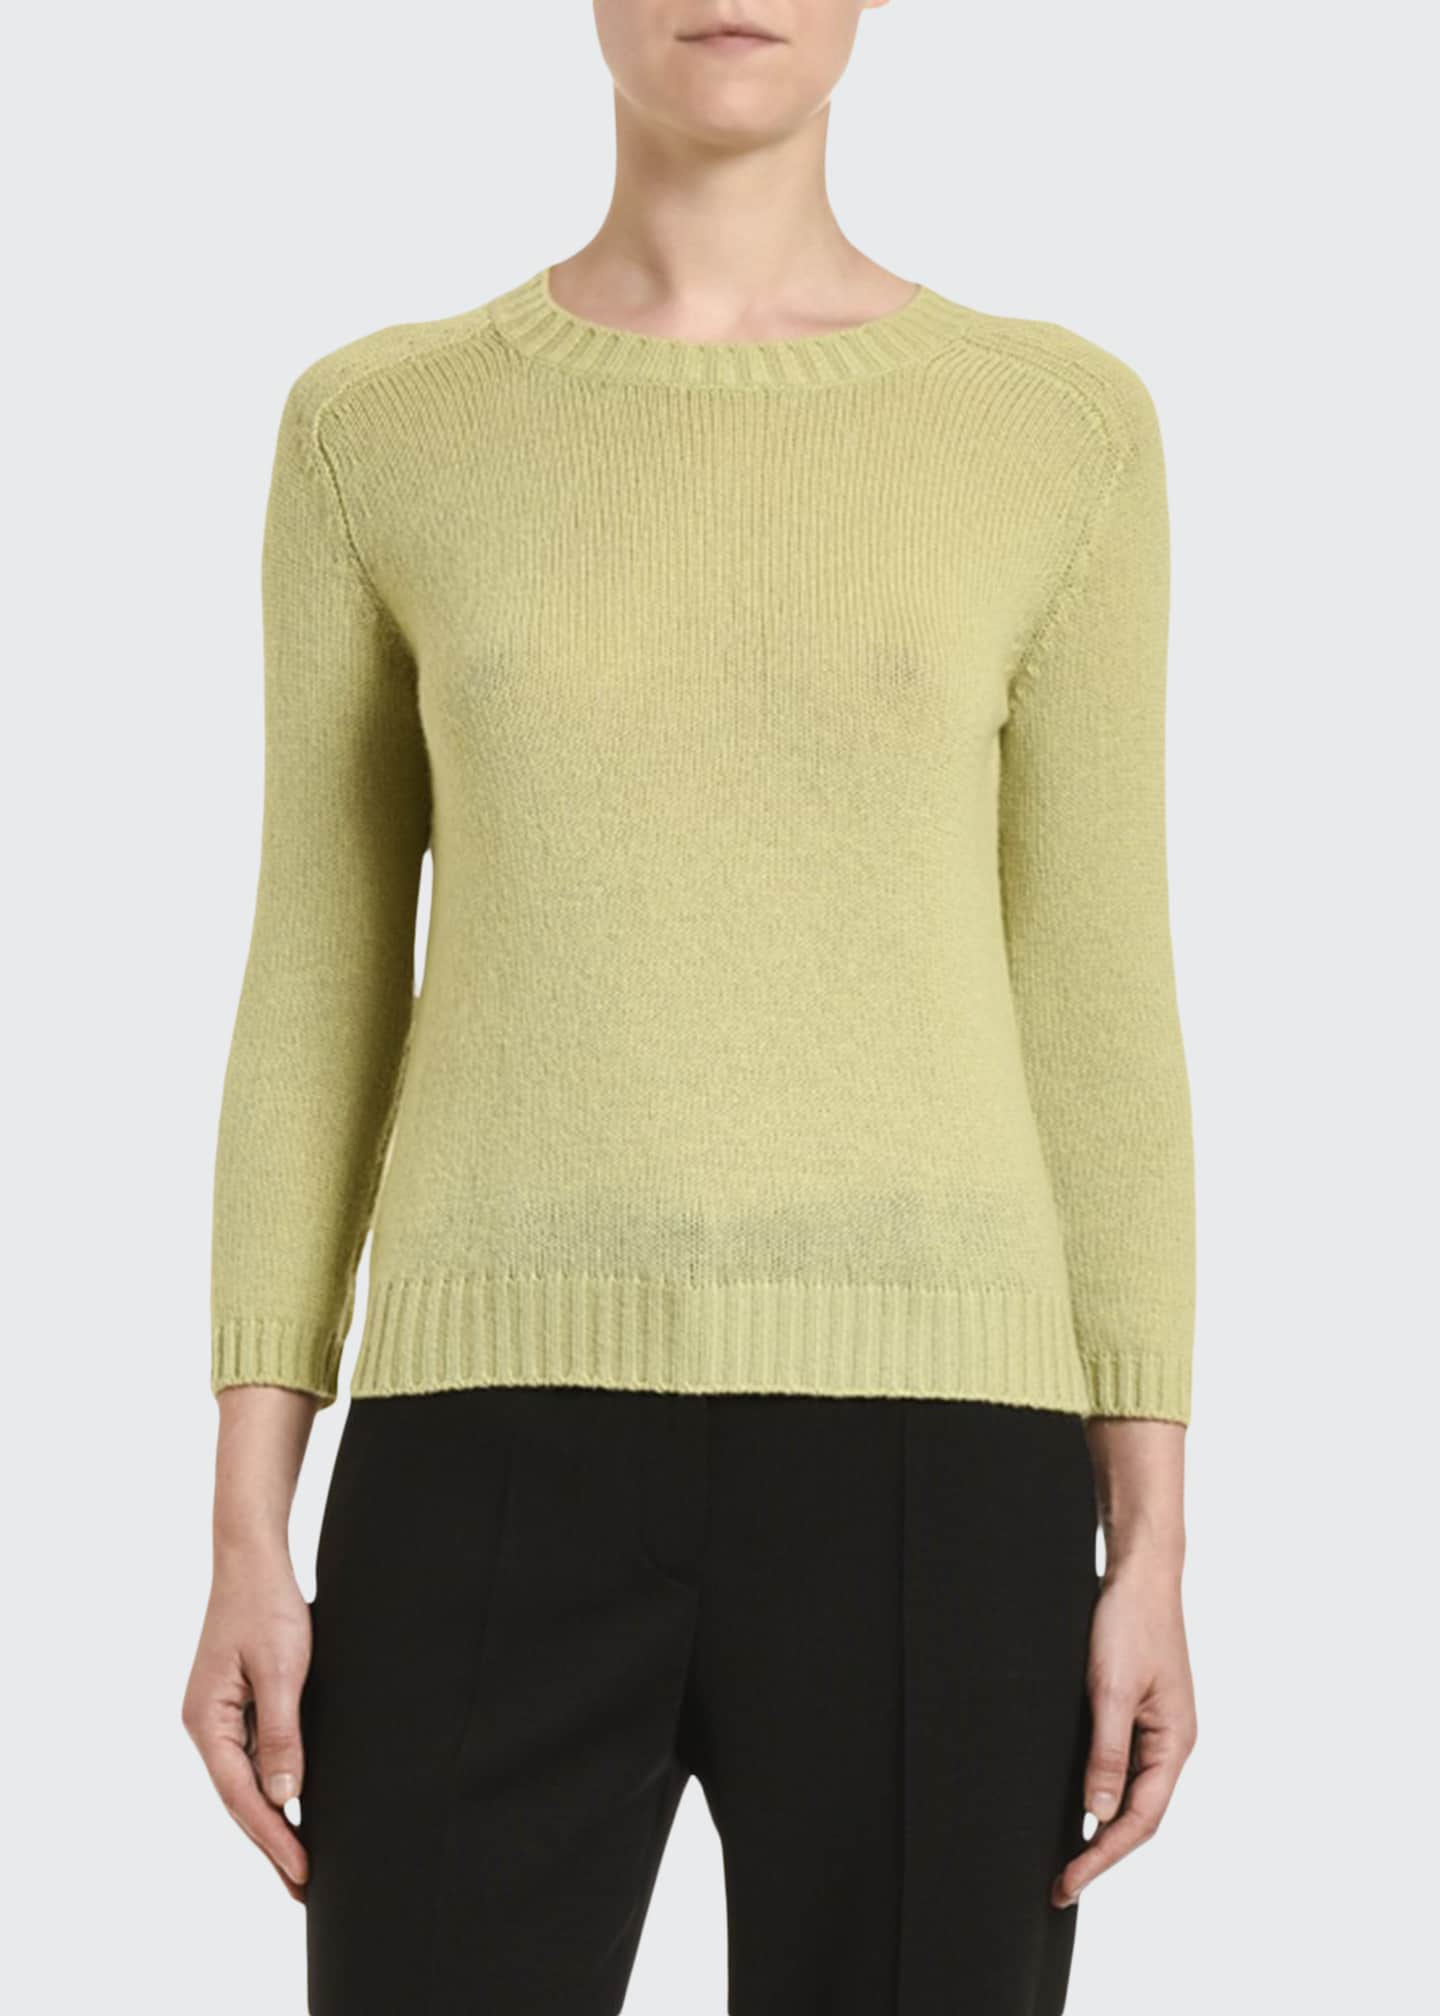 Prada Cashmere Elbow-Patch Fitted Sweater